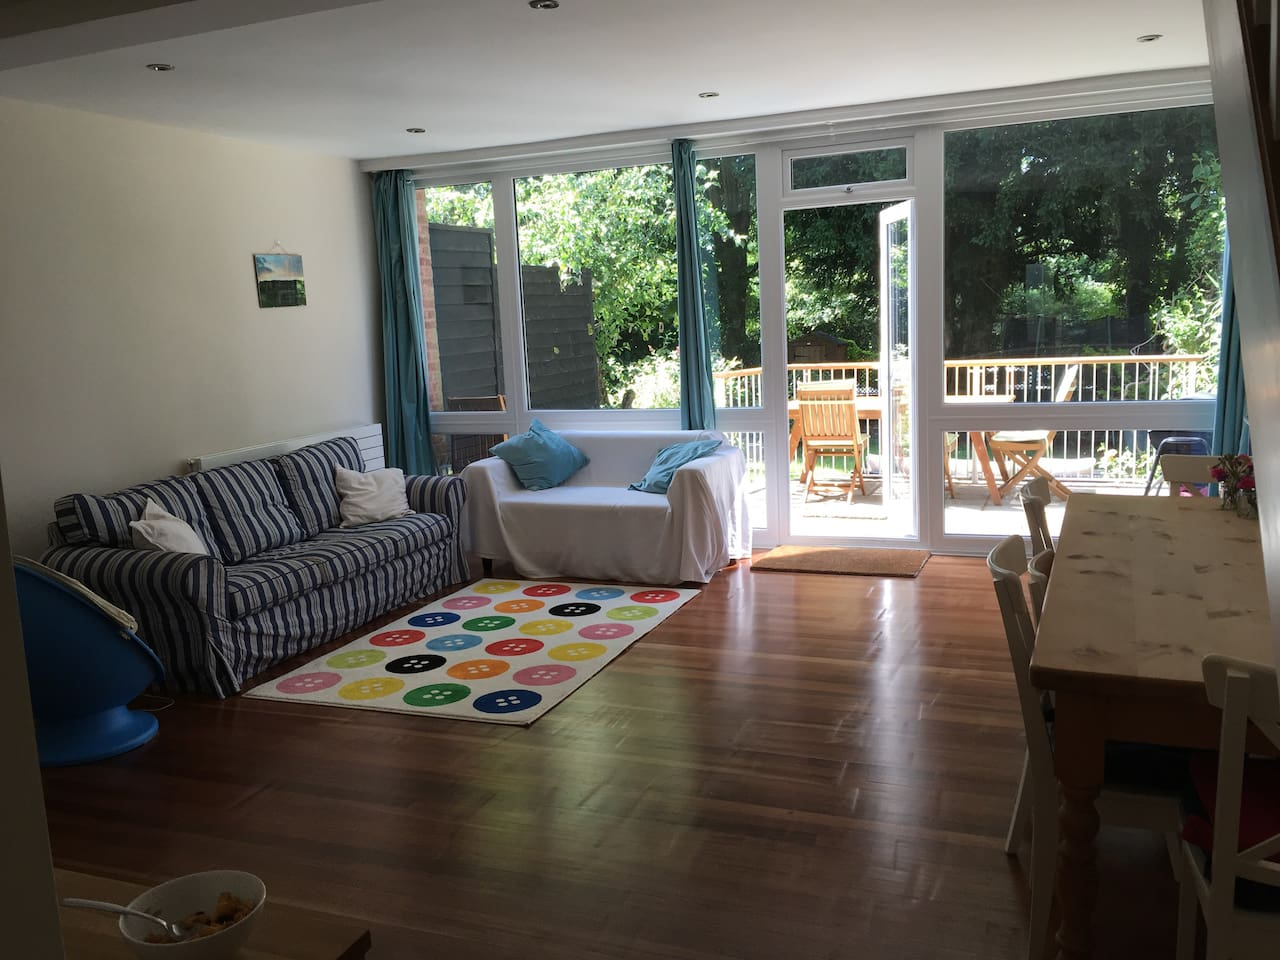 Spacious, bright, open plan living room / dining room looking out onto garden